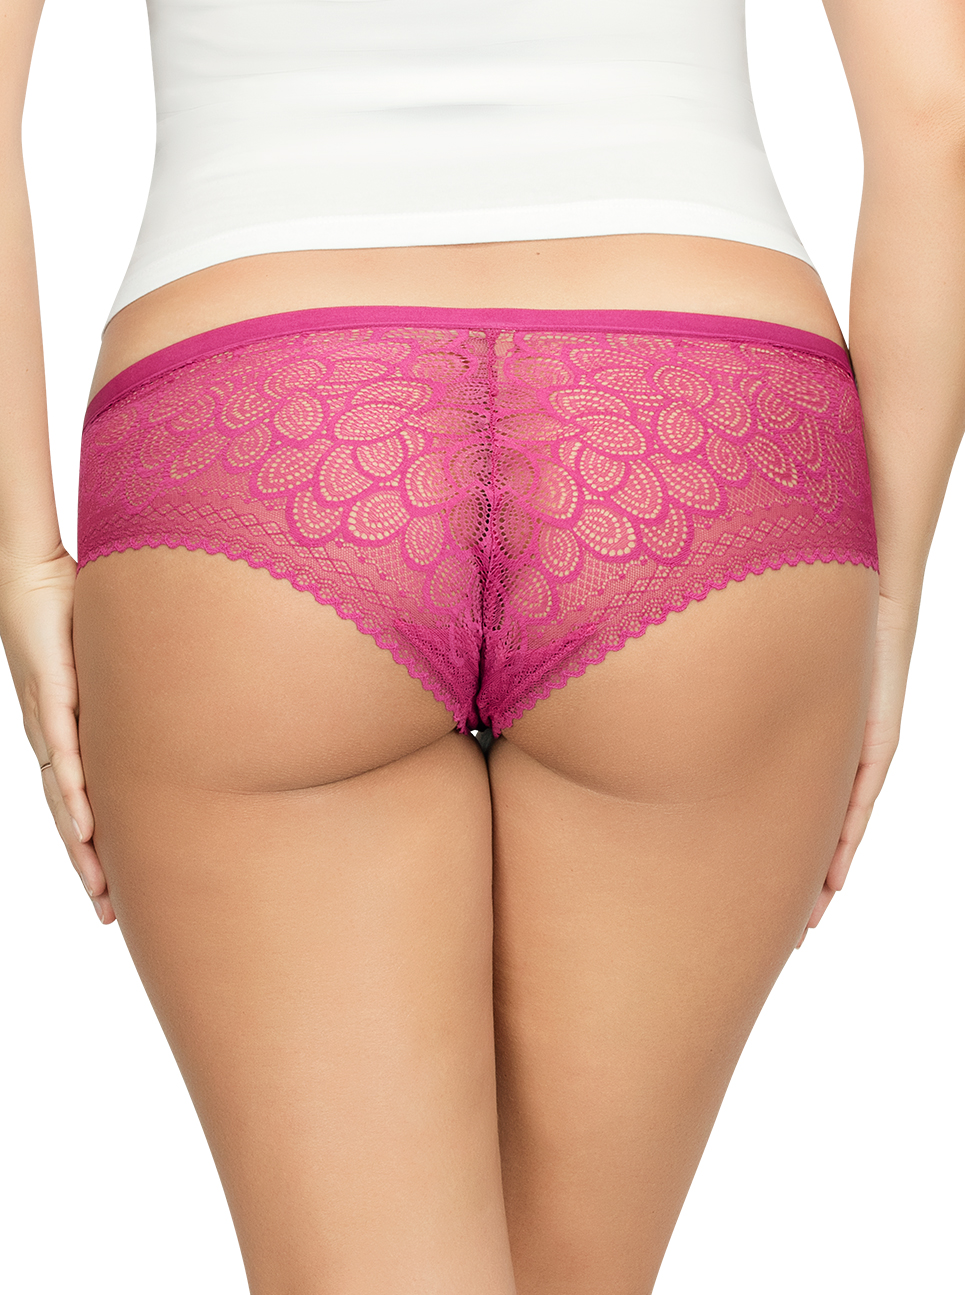 PARFAIT ParfaitPanty SoGlam HipsterPP502 Raspberry Back - Panty So Glam Hipster - Raspberry - PP502